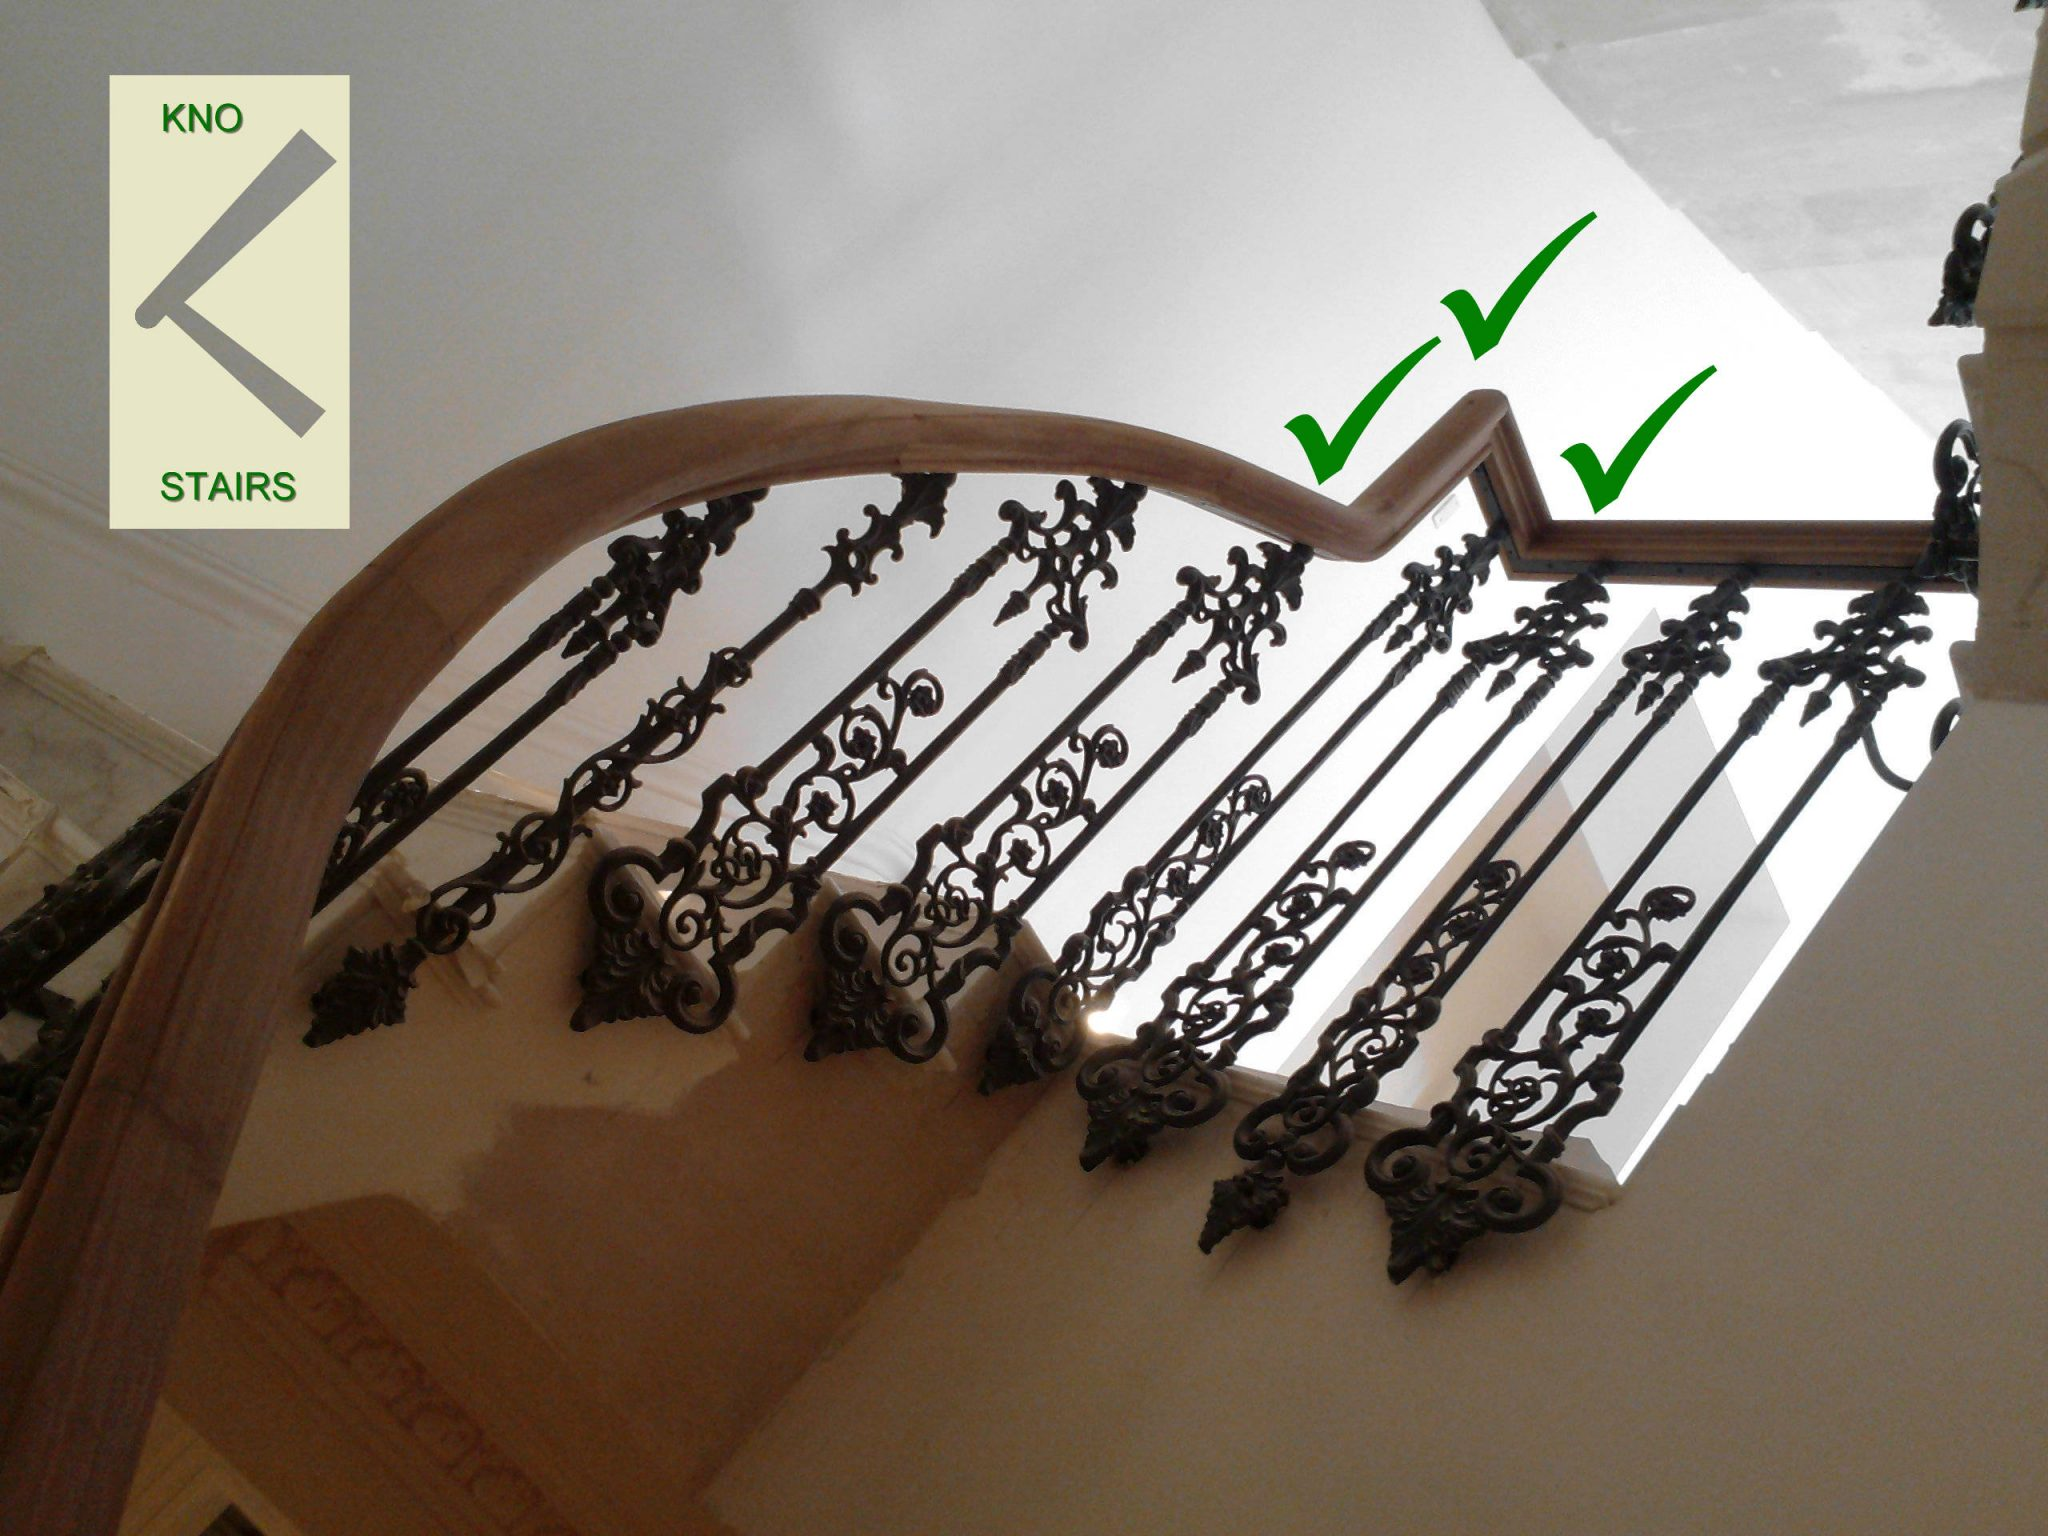 The gooseneck from below with plenty of room for handrail mitres.